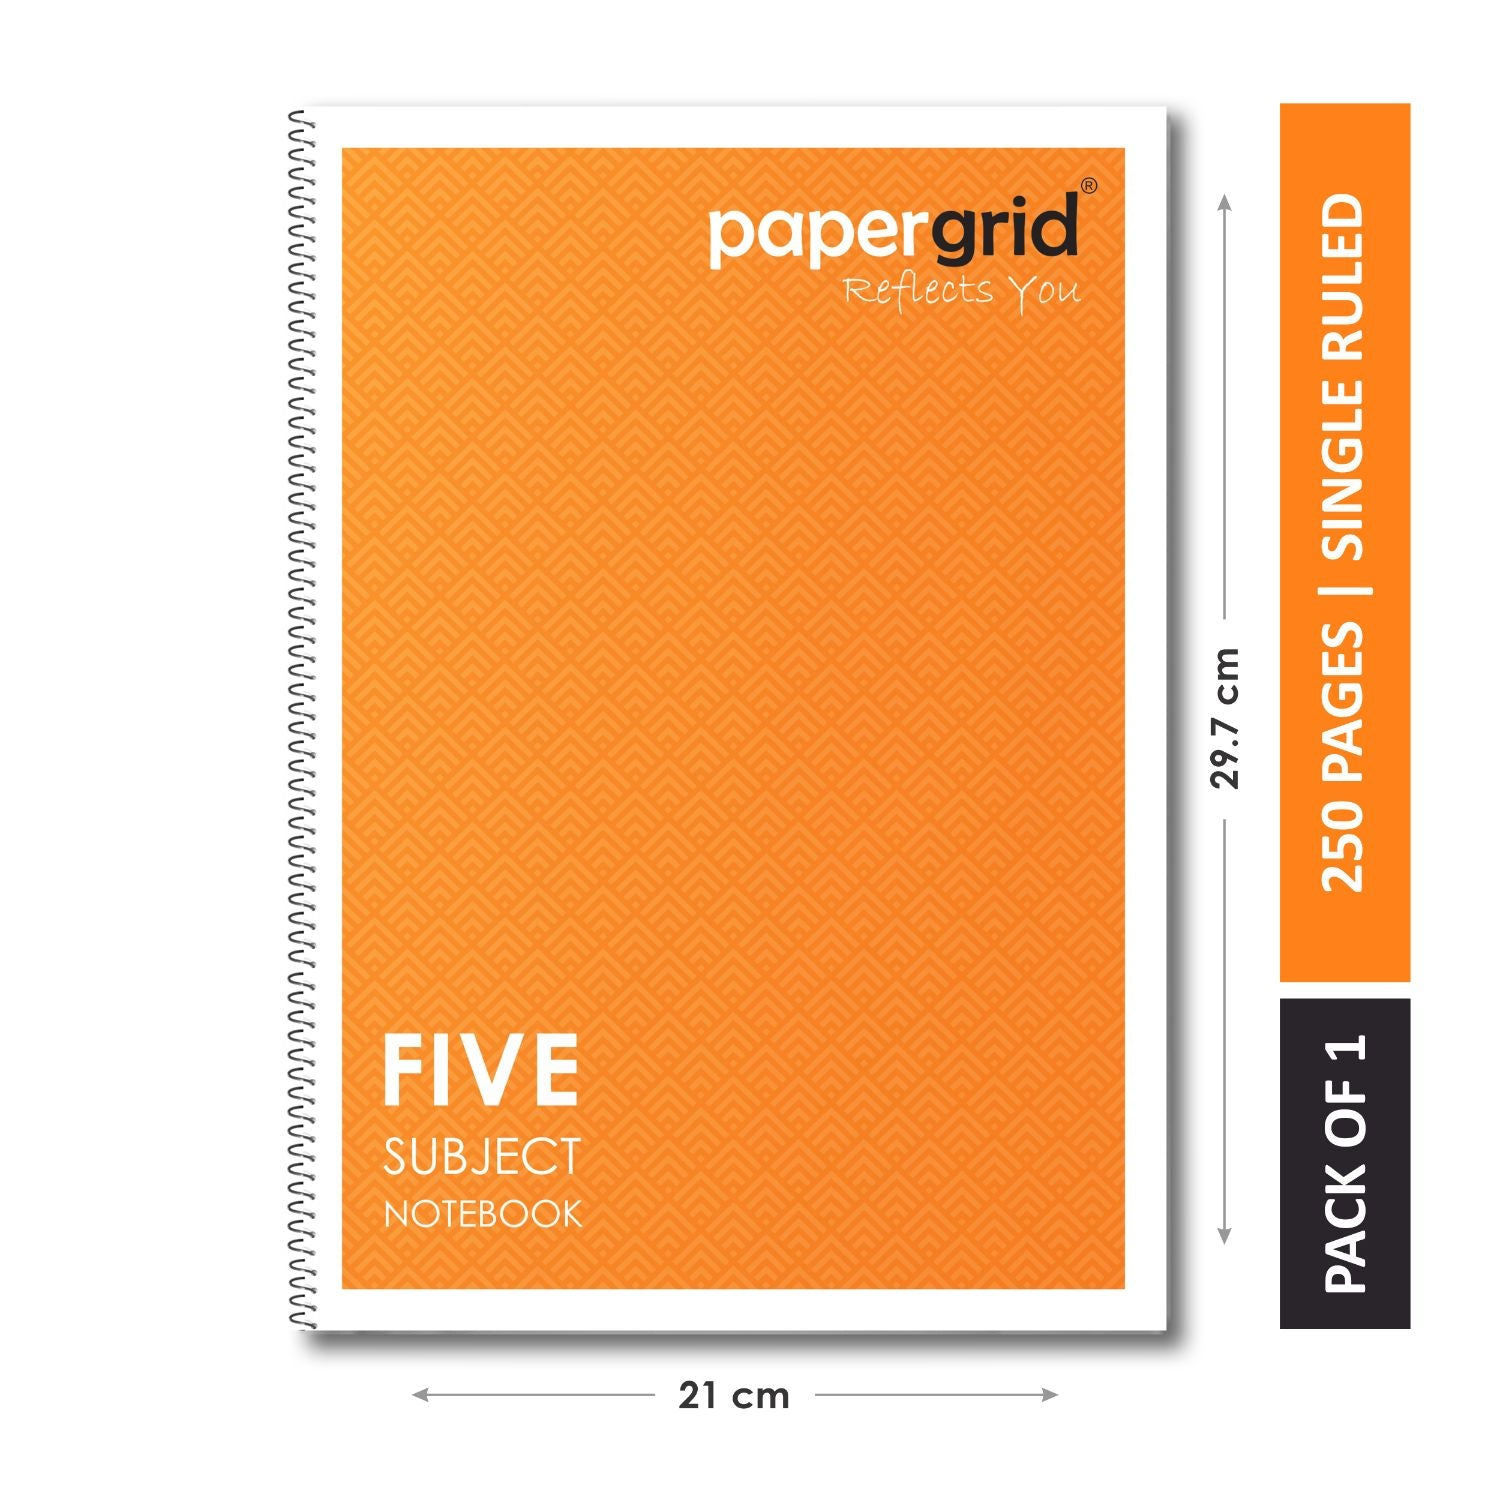 Papergrid Spiral Notebook - A4 (29.7 cm x 21 cm), Single Line, 5 Subjects, 250 Pages - Pack of 1